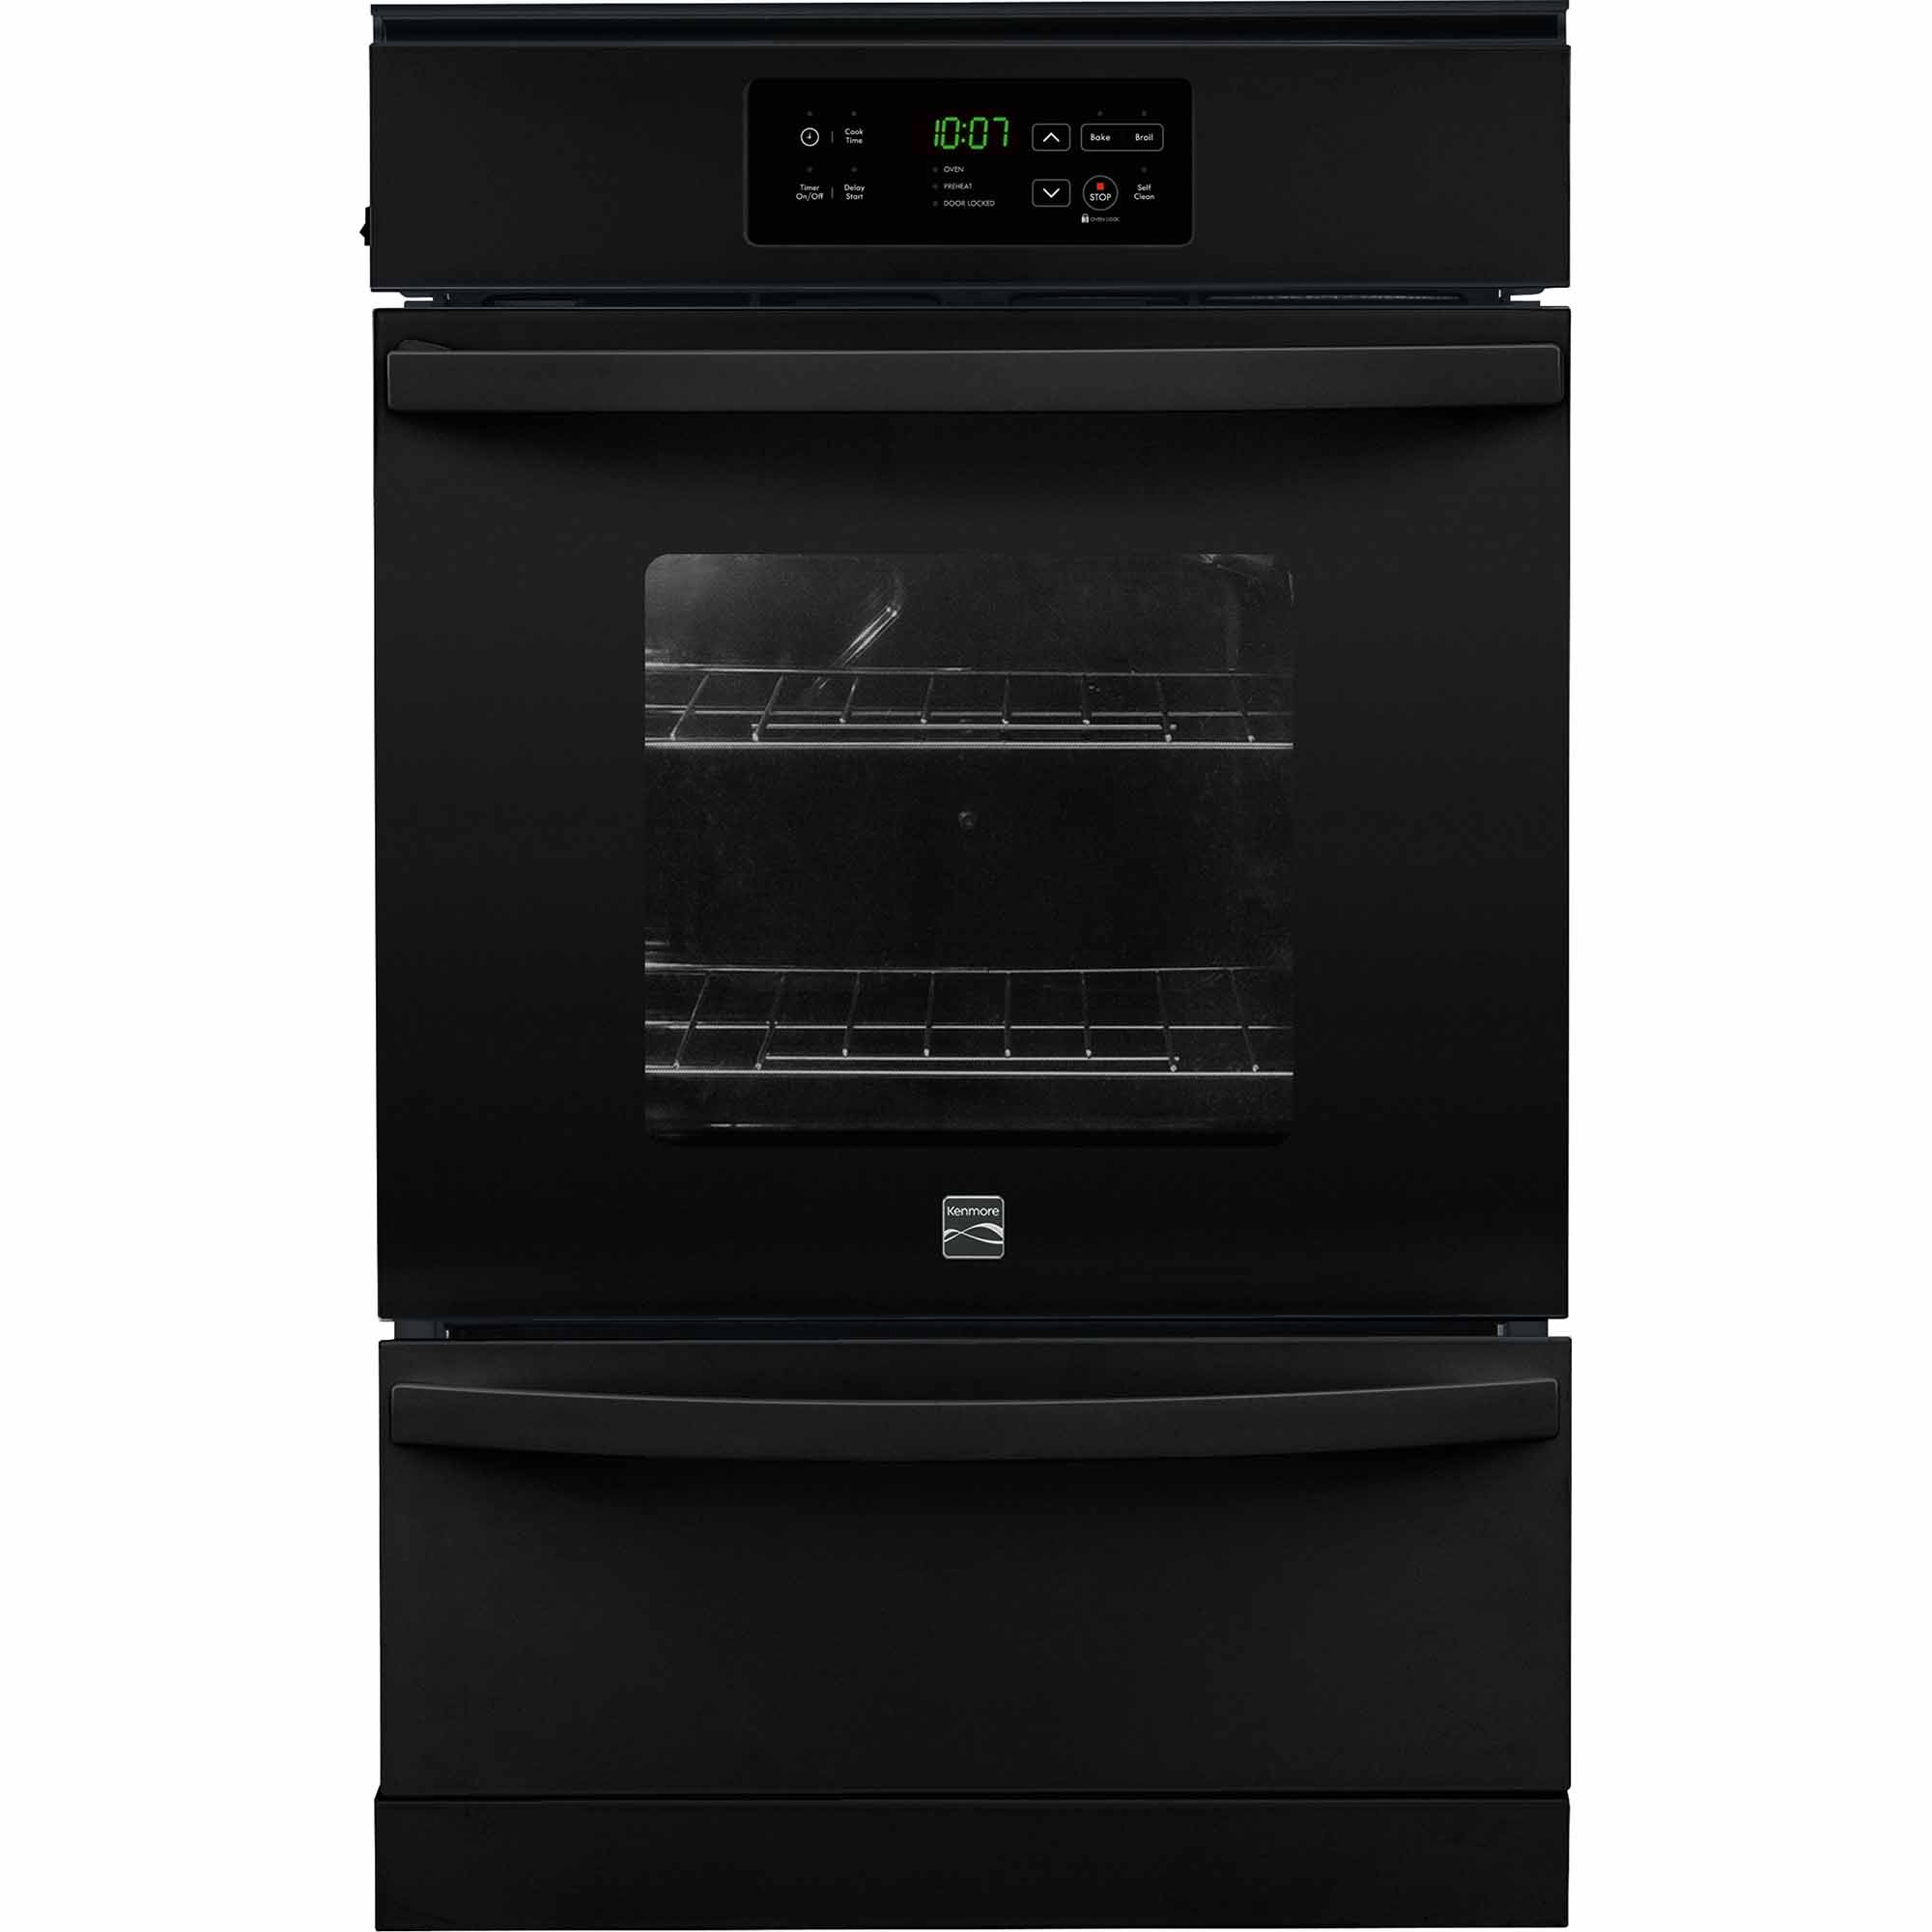 Kenmore 40309 24 Gas Wall Oven - Black